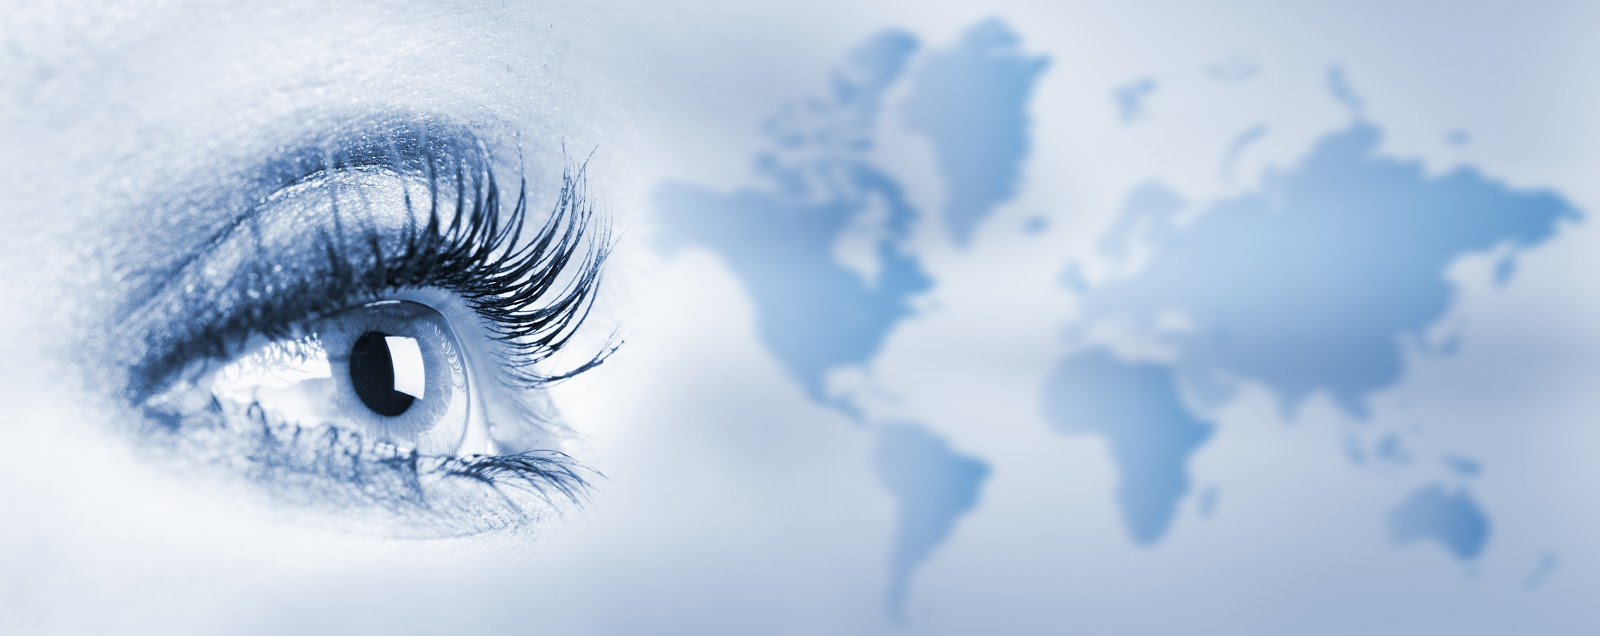 Image of eye looking towards map of world on blue background ... on eye earth, eye mind map, eye egypt, eye clock, home depot map, an old map,